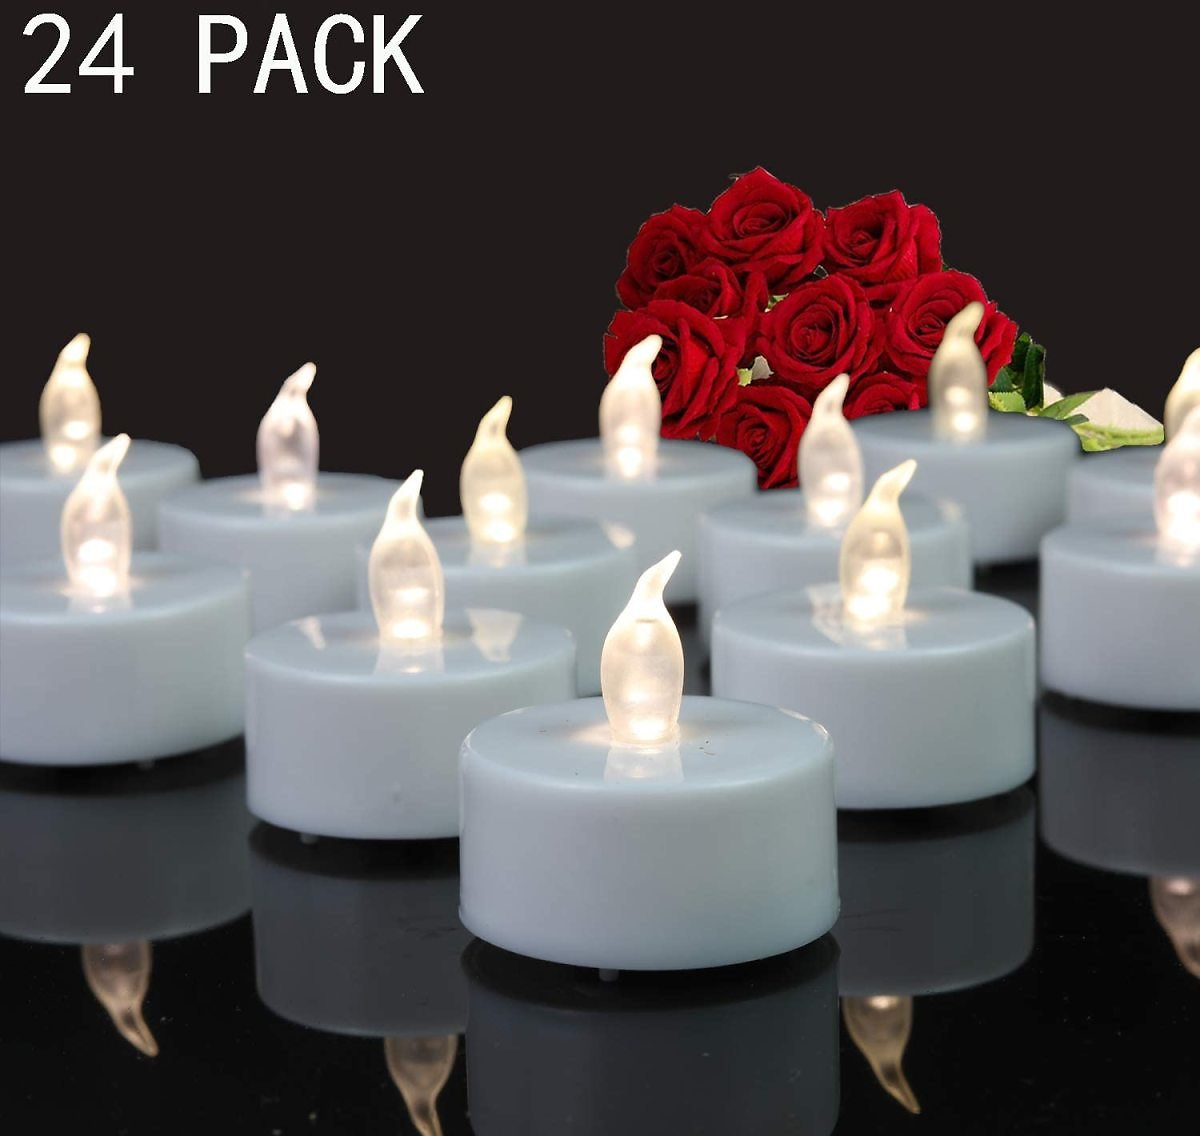 Tappovaly Tea Lights, 24 Pack Flameless LED Candles Battery Operated Tea Lights Candles Long Lasting Tealight for Wedding Holida